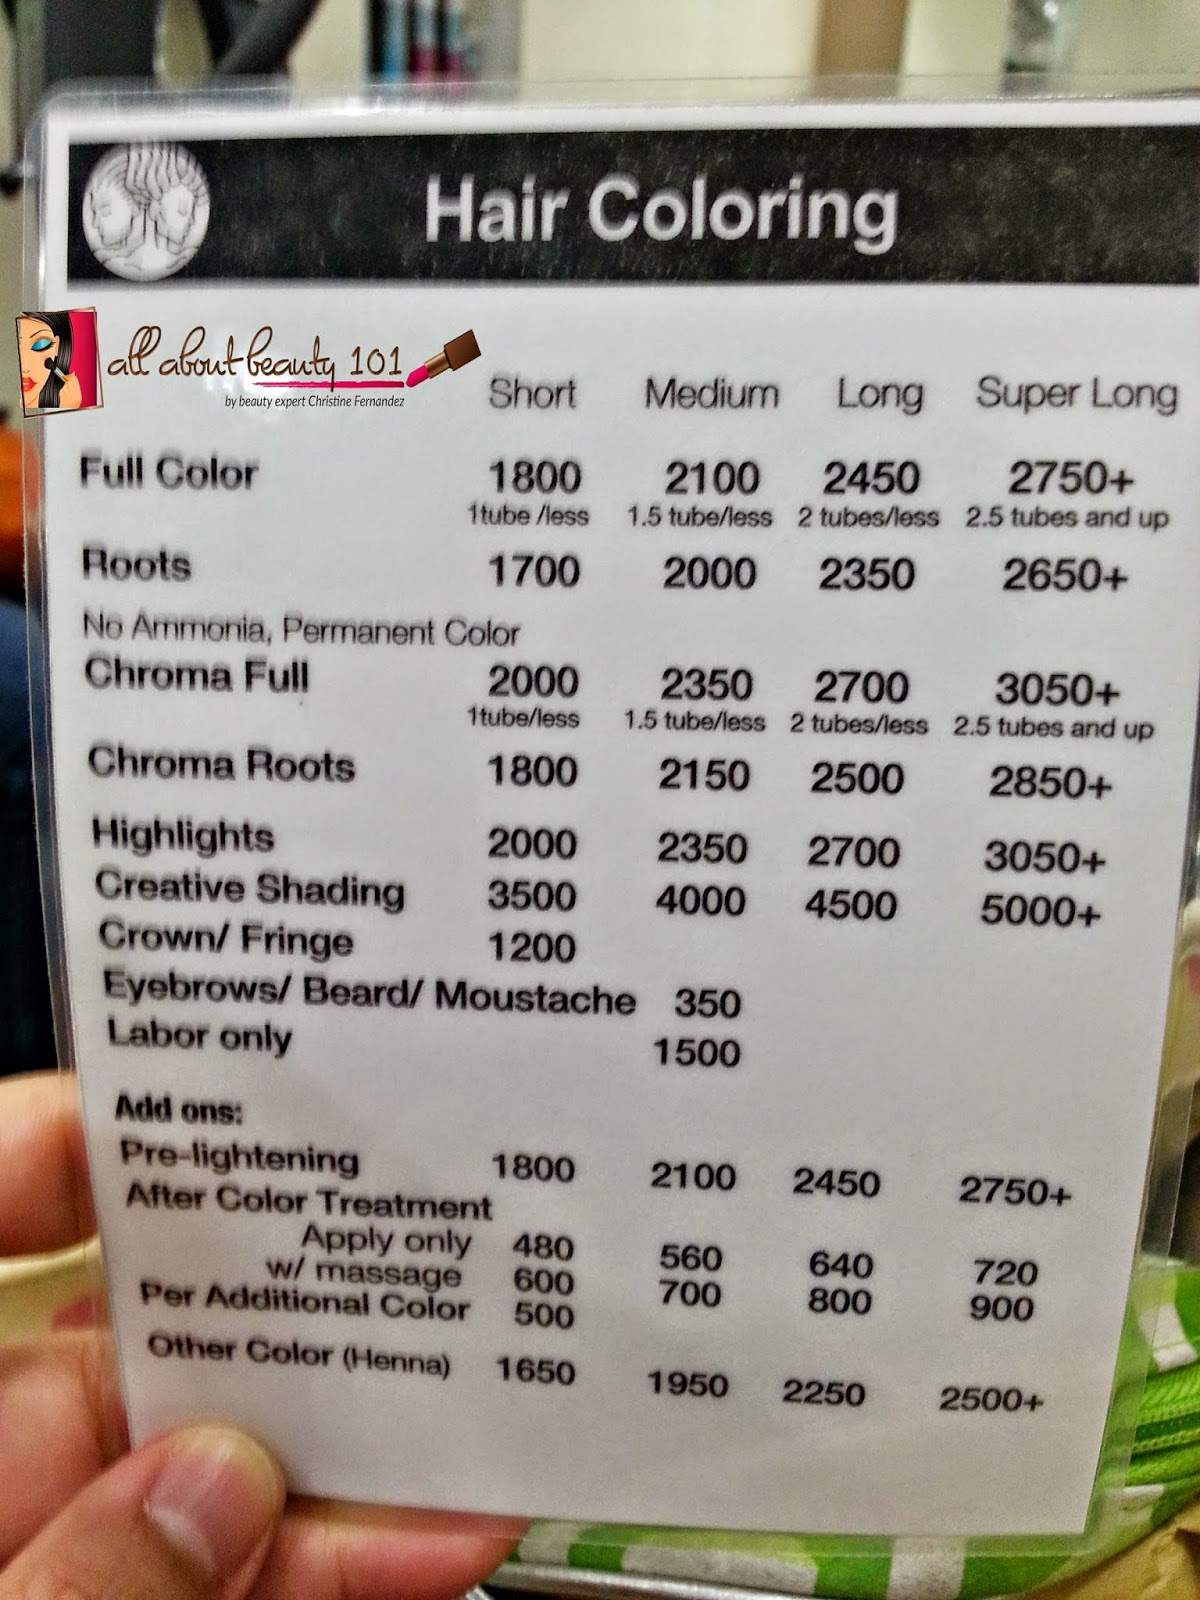 Piandre Salon My Latest Experience Rates And Services